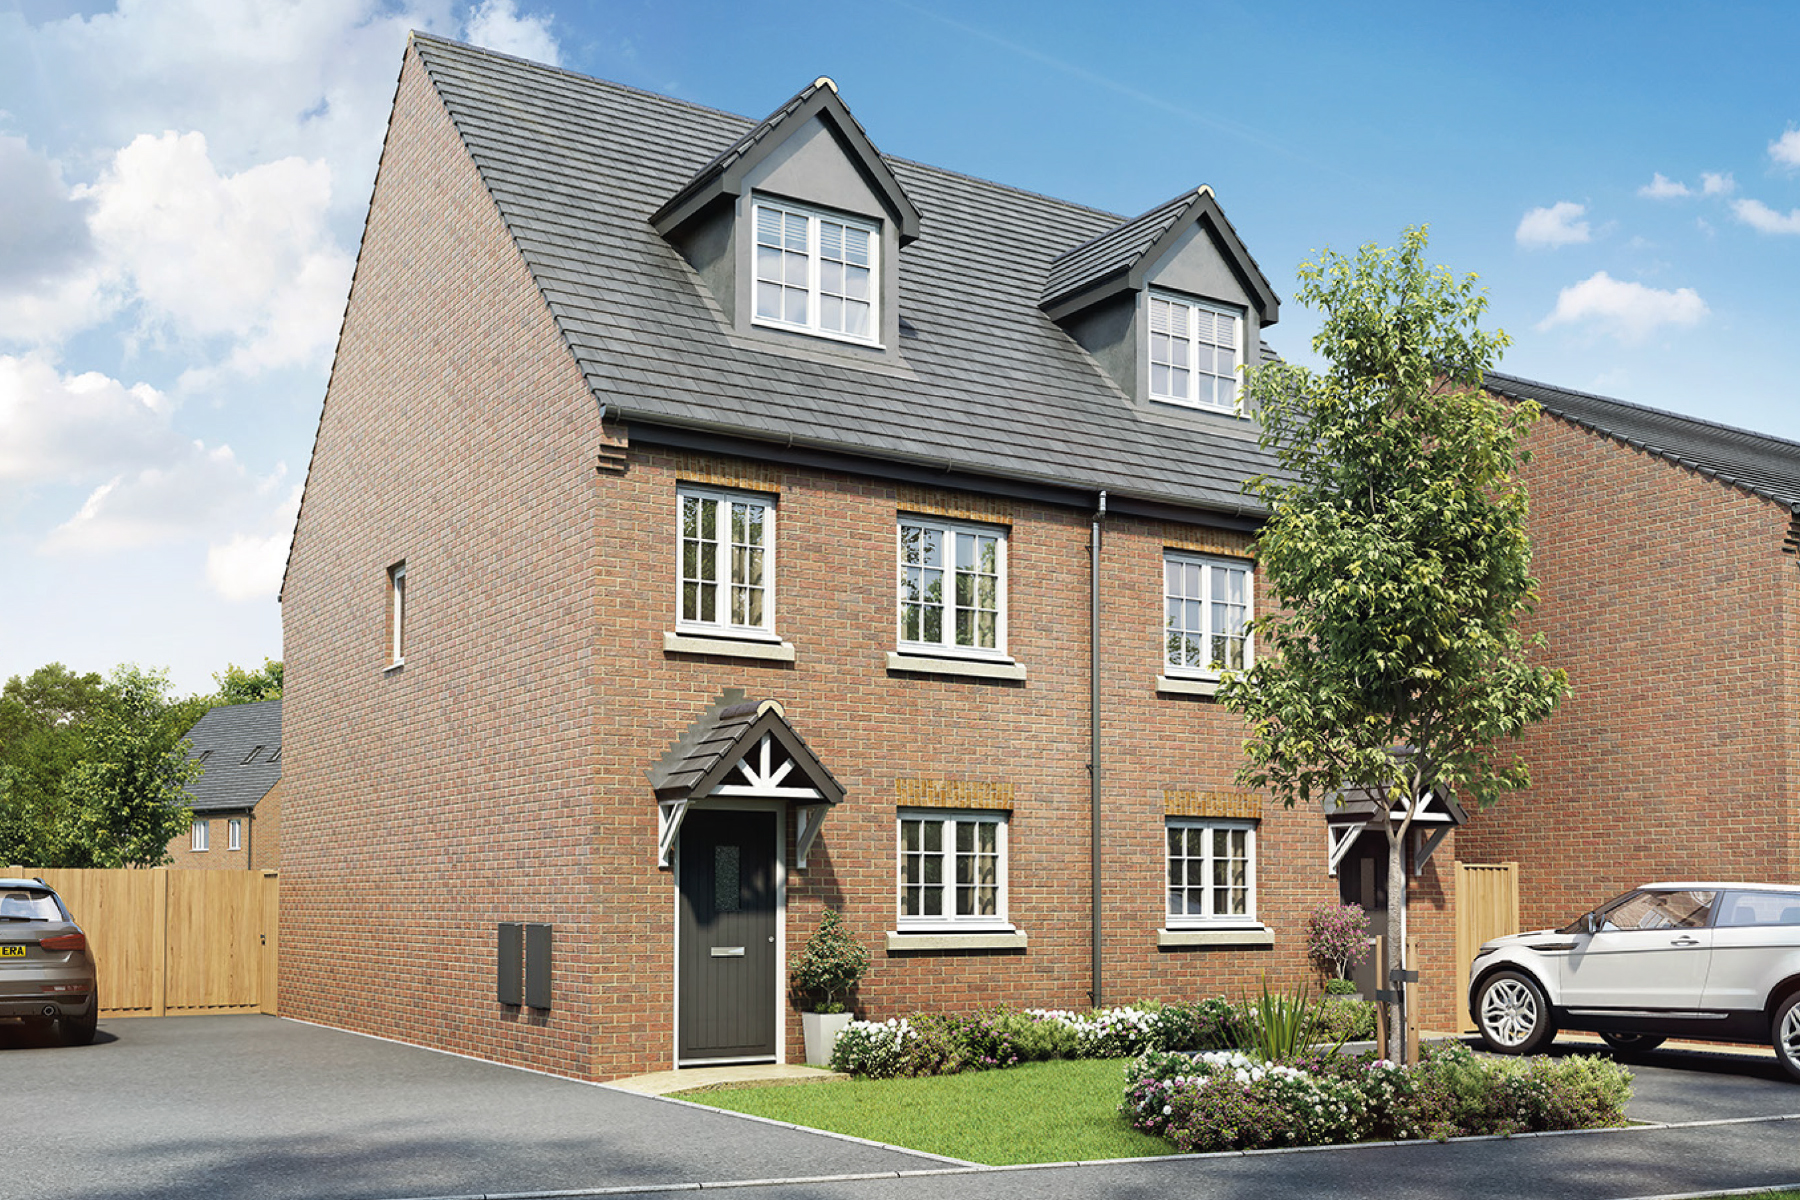 55410_TWY - Colliers Court P3-CGI-Alton